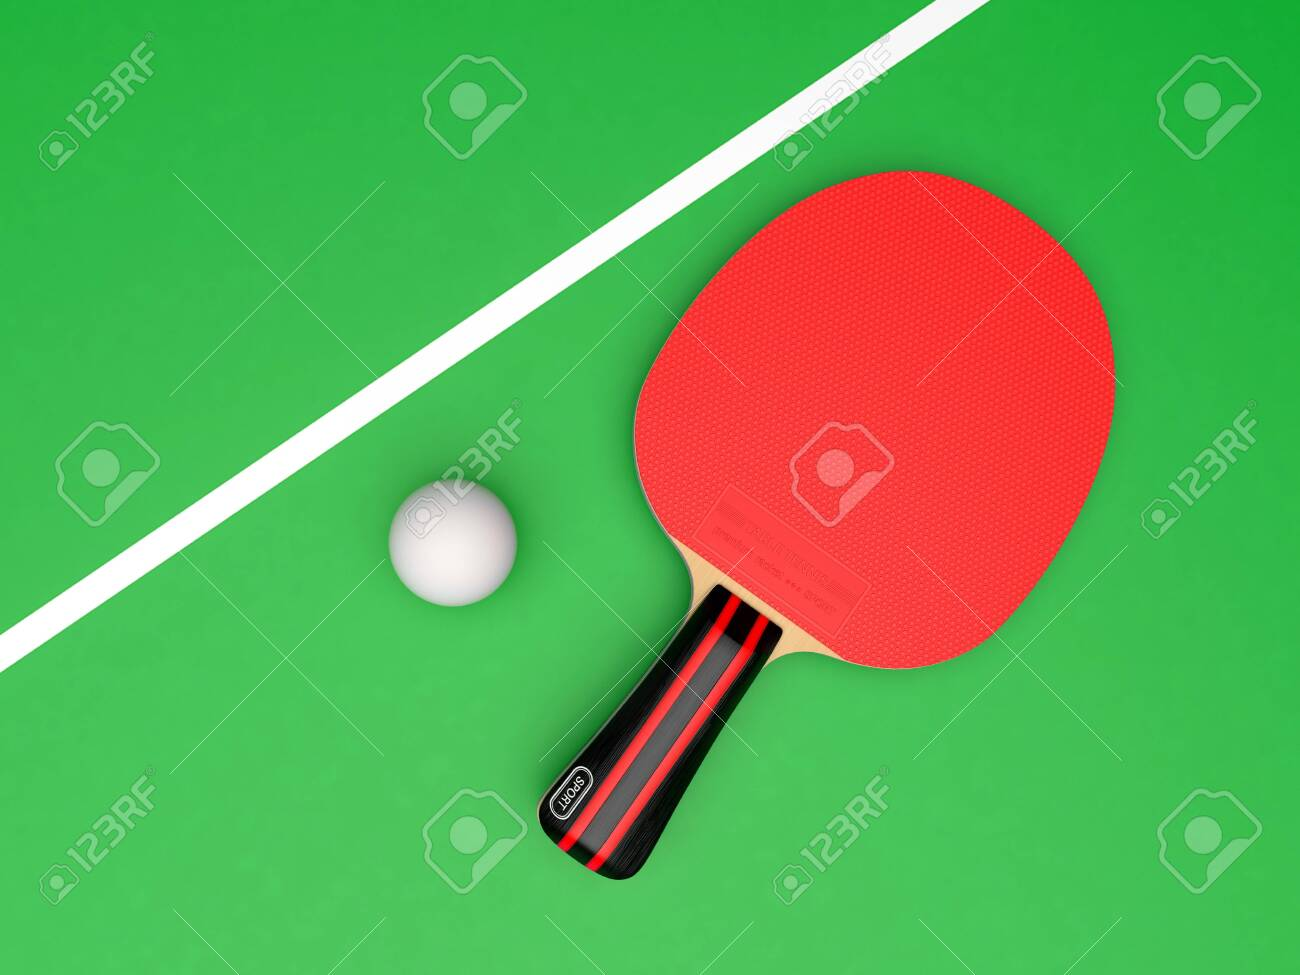 Red table tennis racket with ball. On green background. 3d rendering illustration - 150284160